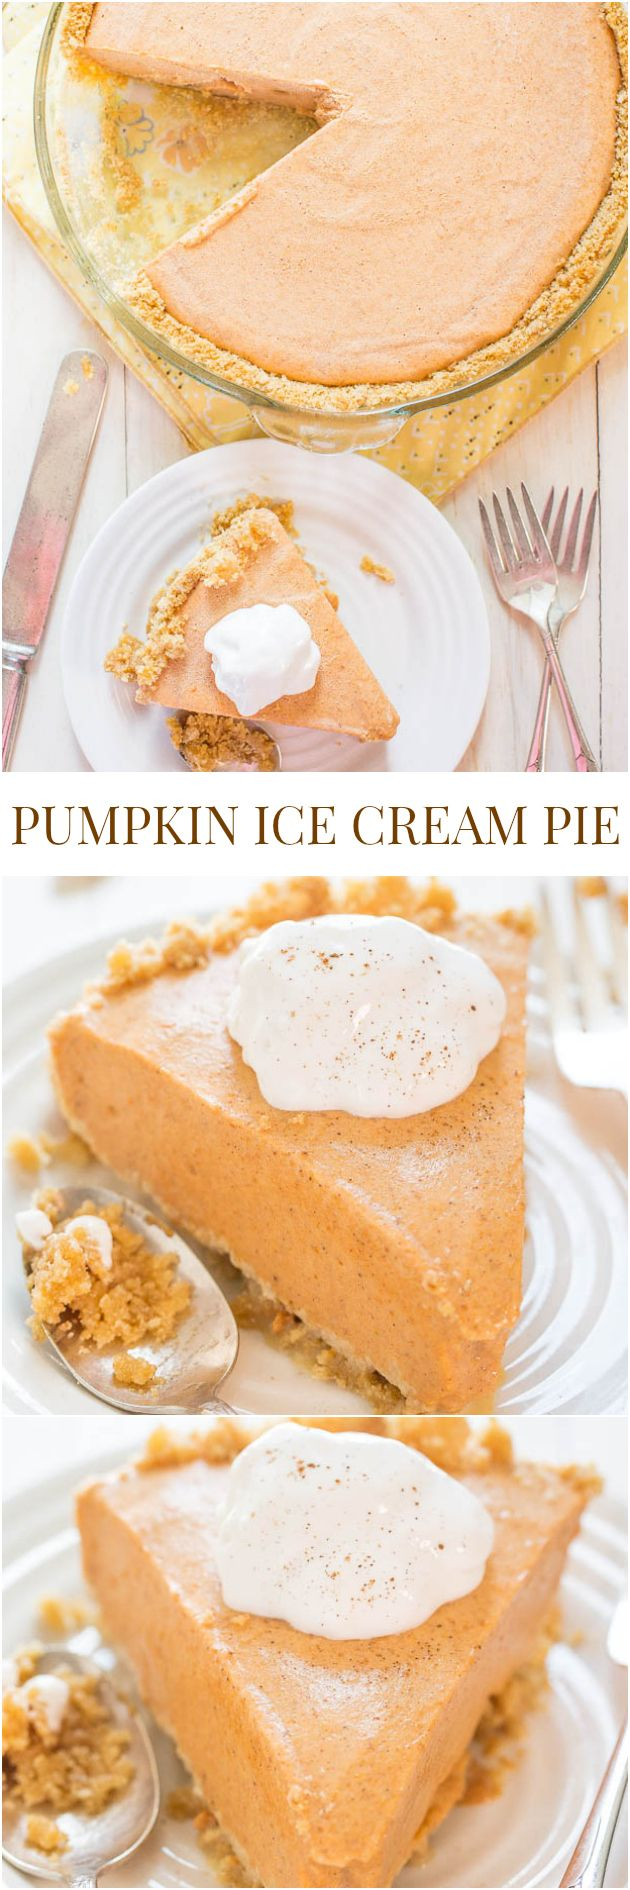 Pumpkin Ice Cream Pie - The easiest pumpkin pie you'll ever make! Put it on your Thanksgiving menu and save yourself pie-making stress!! @averie